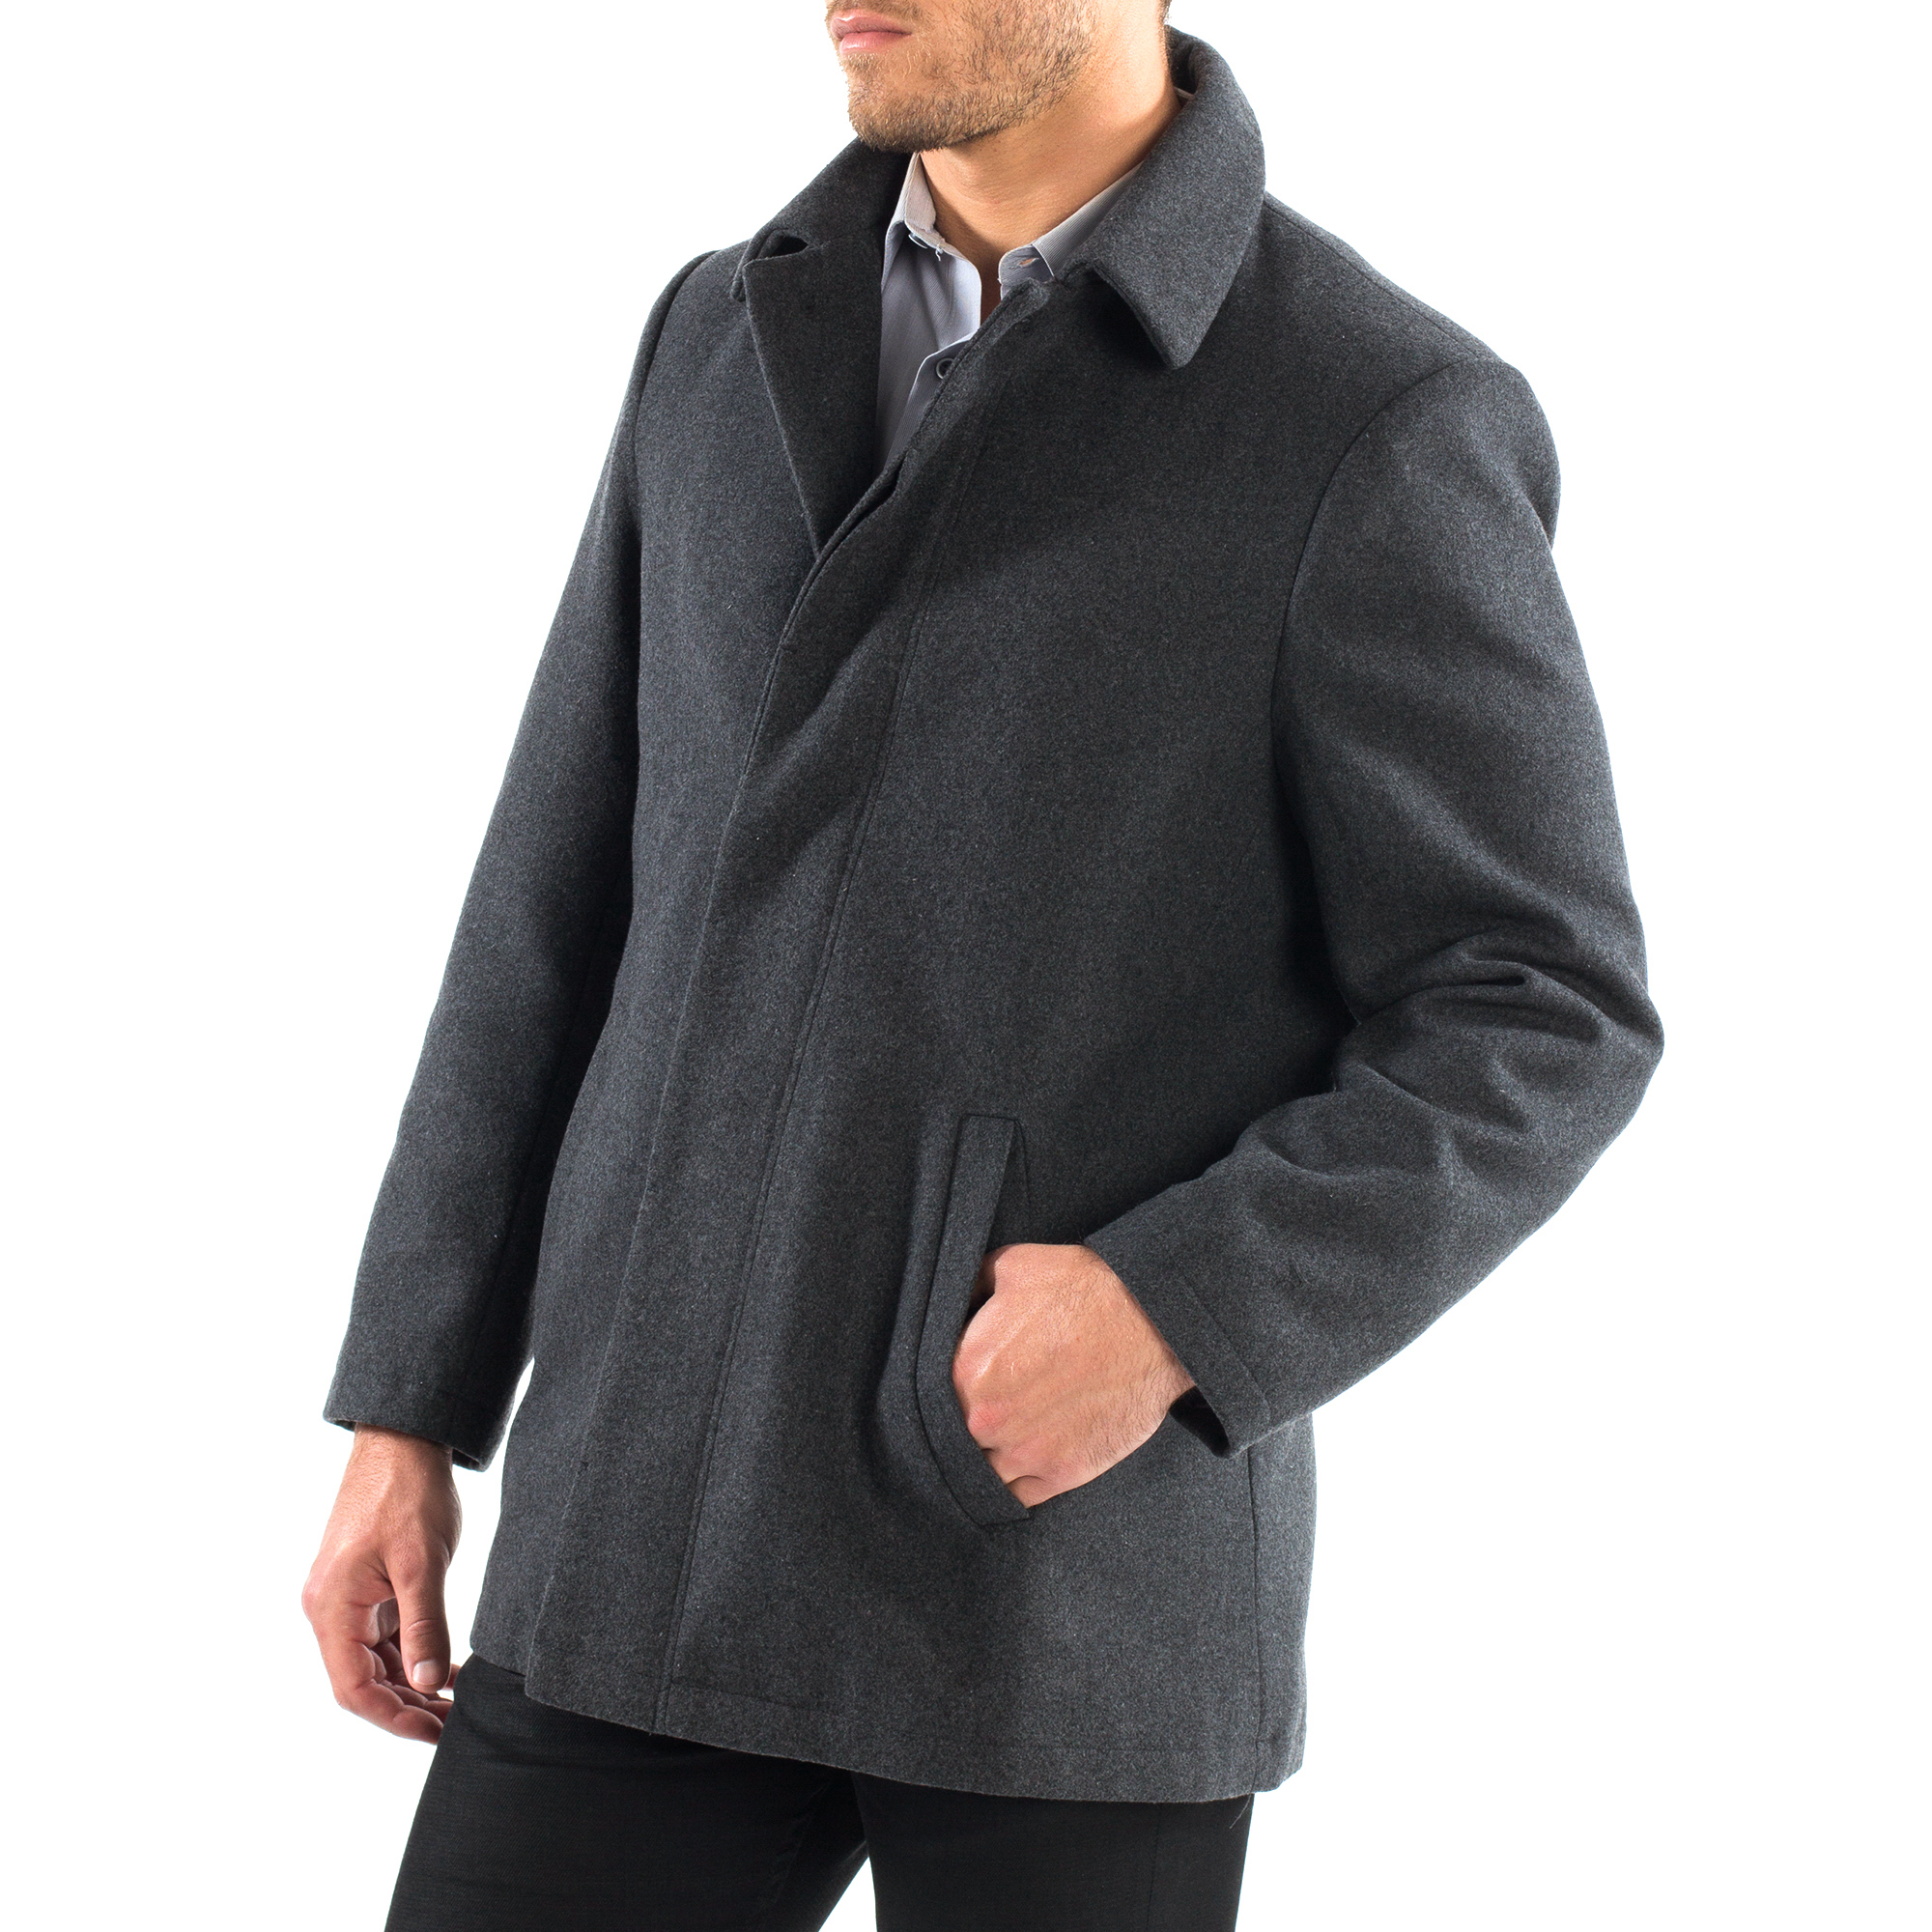 Alpine-Swiss-Vance-Mens-Jacket-Wool-Blend-Button-Up-Coat-Dress-Car-Coat-Blazer thumbnail 26